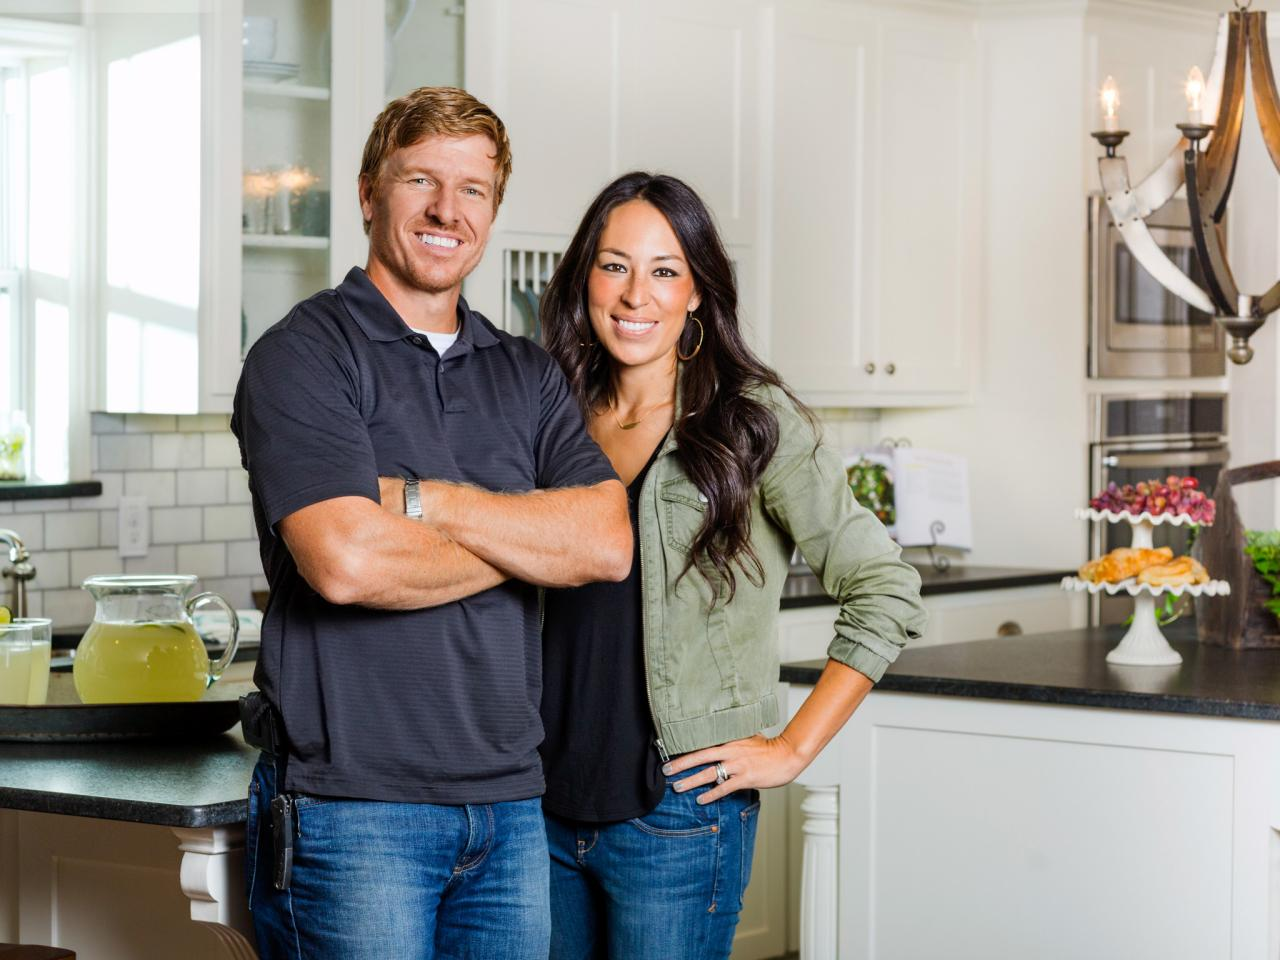 Joanna and Chip Gaines stand side by side smiling in an immaculate white and black kitchen